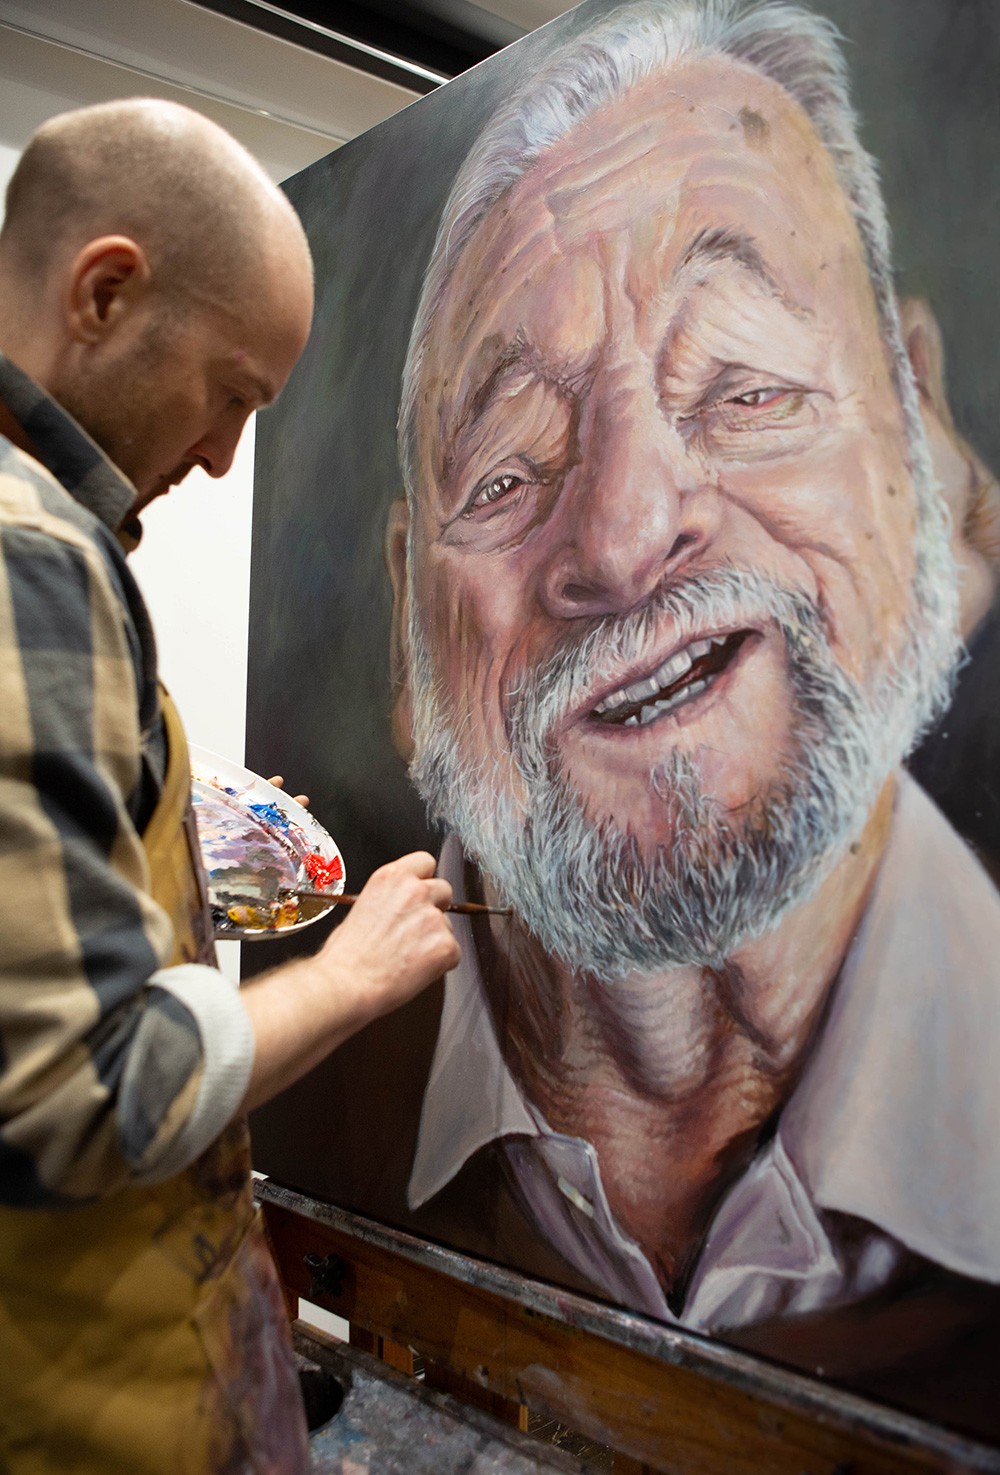 Derren Brown painting Stephen Sondheim portrait